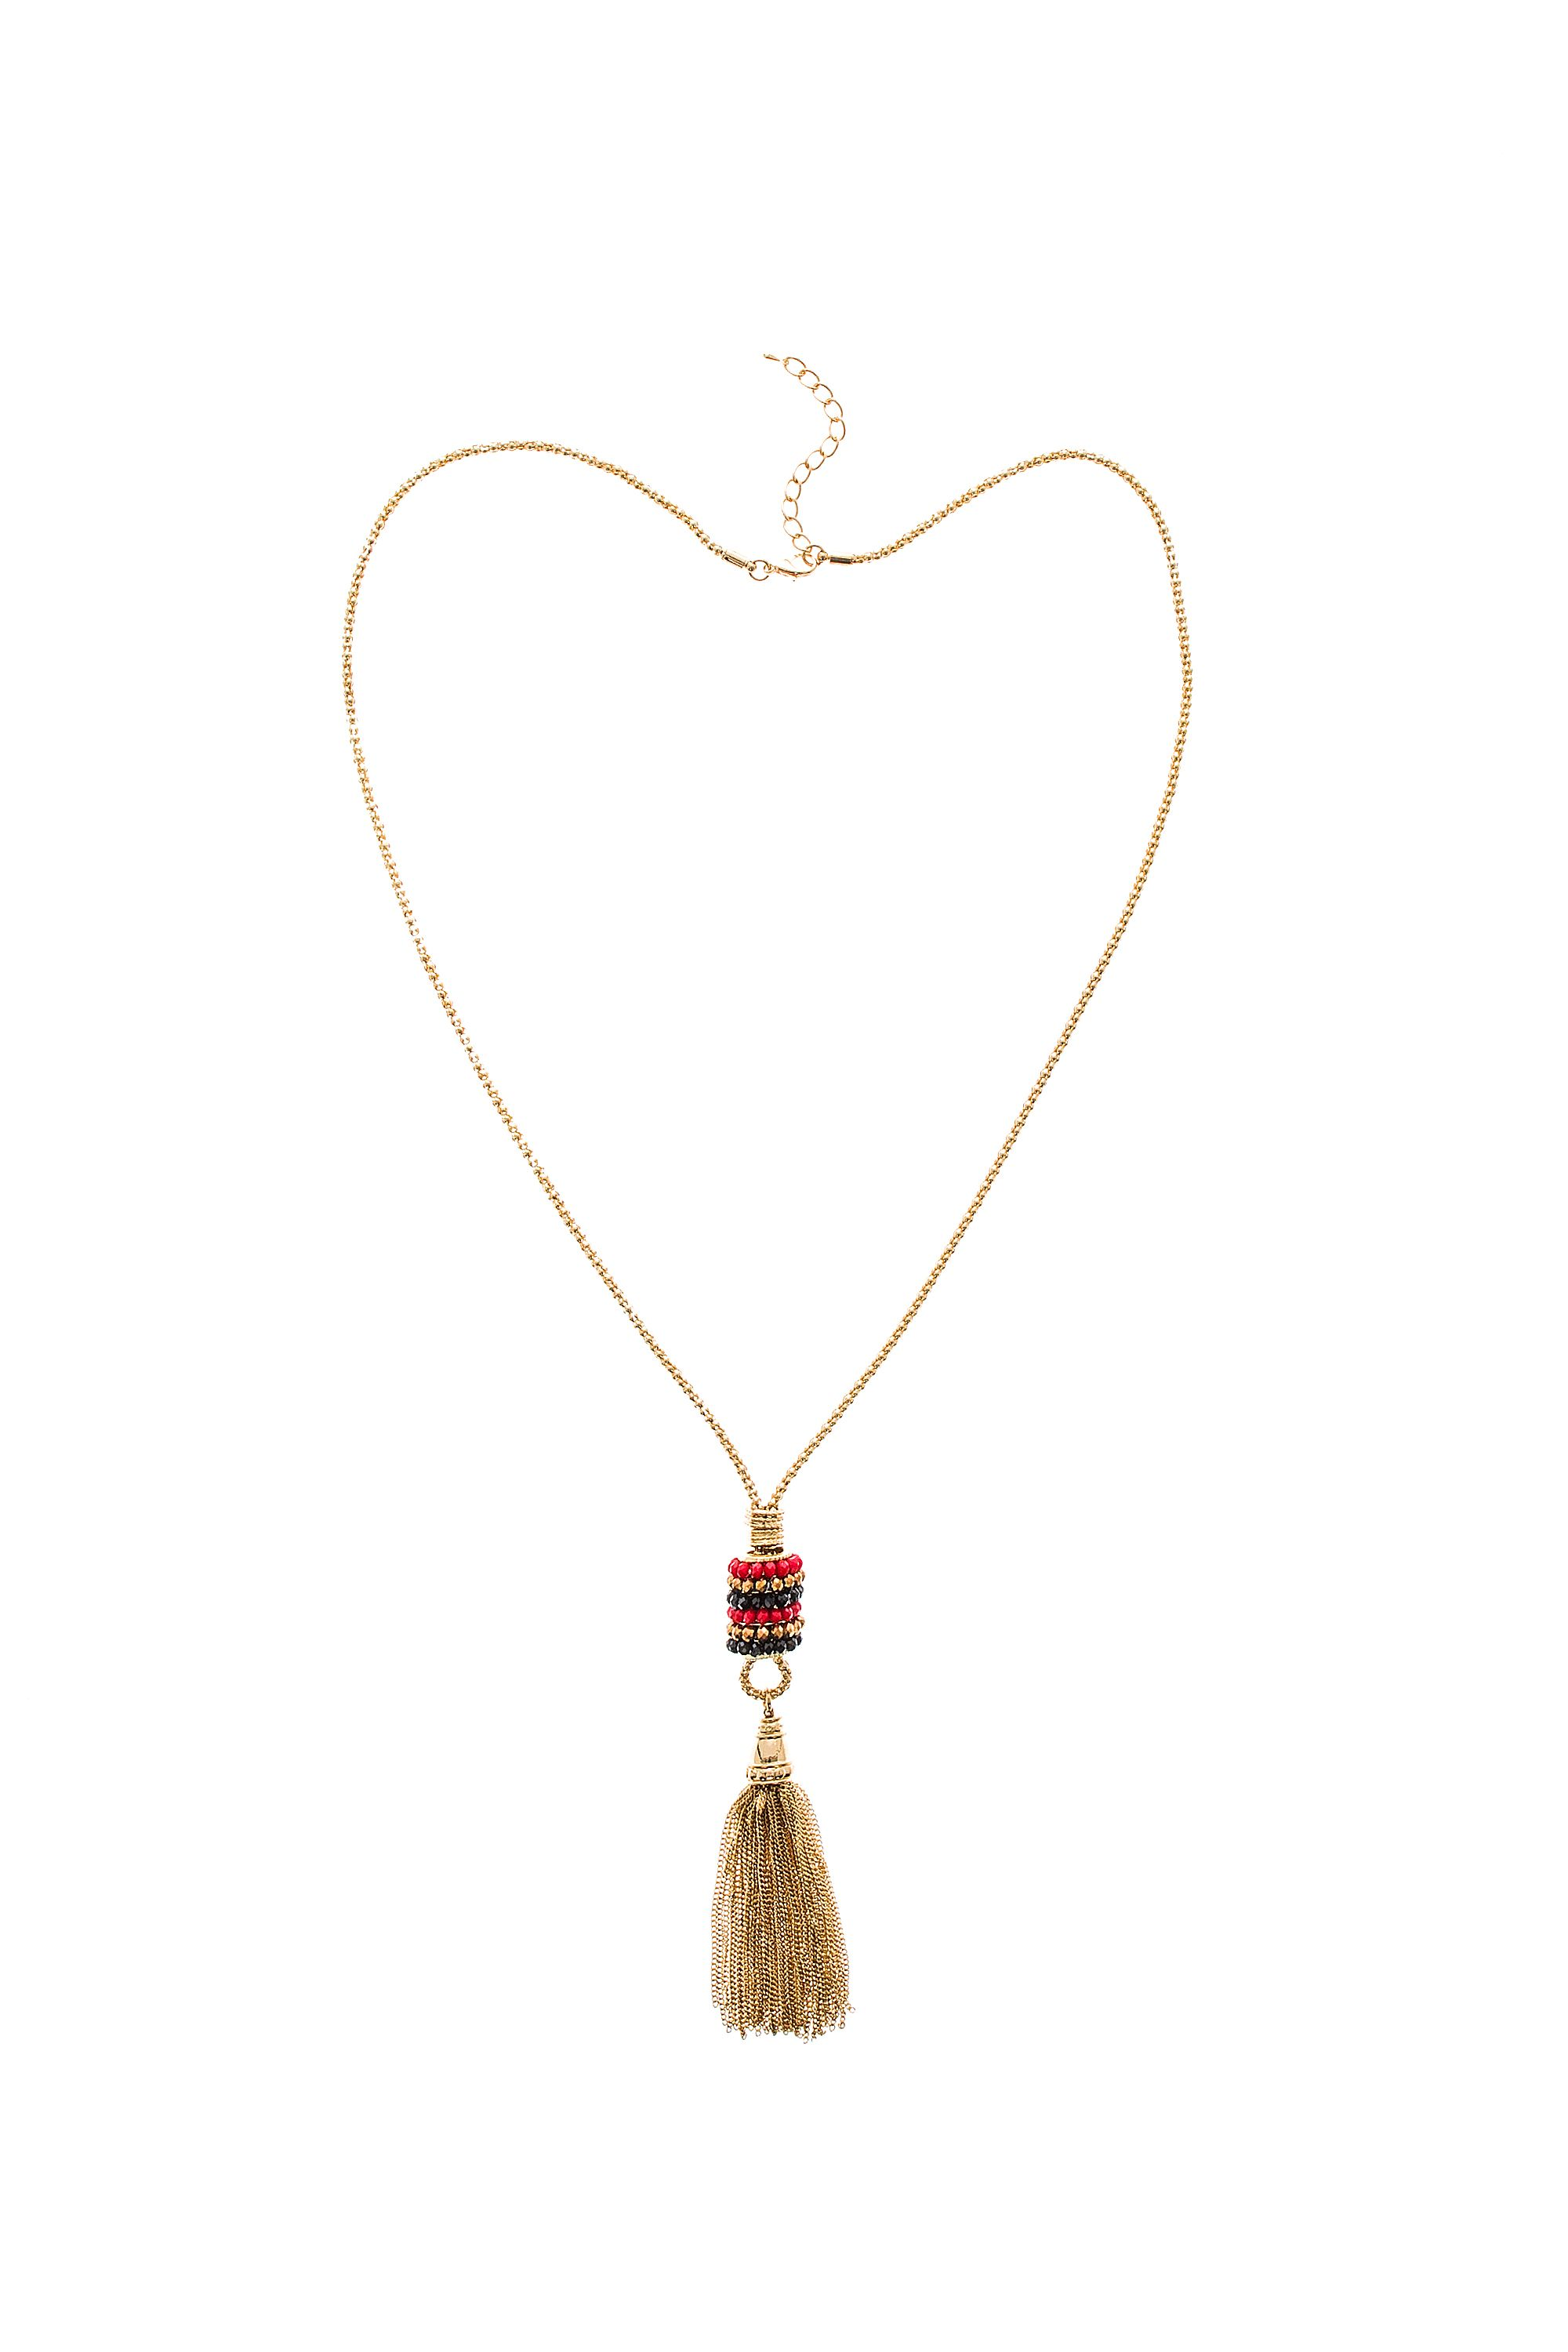 NECKLACE WITH PENDENT